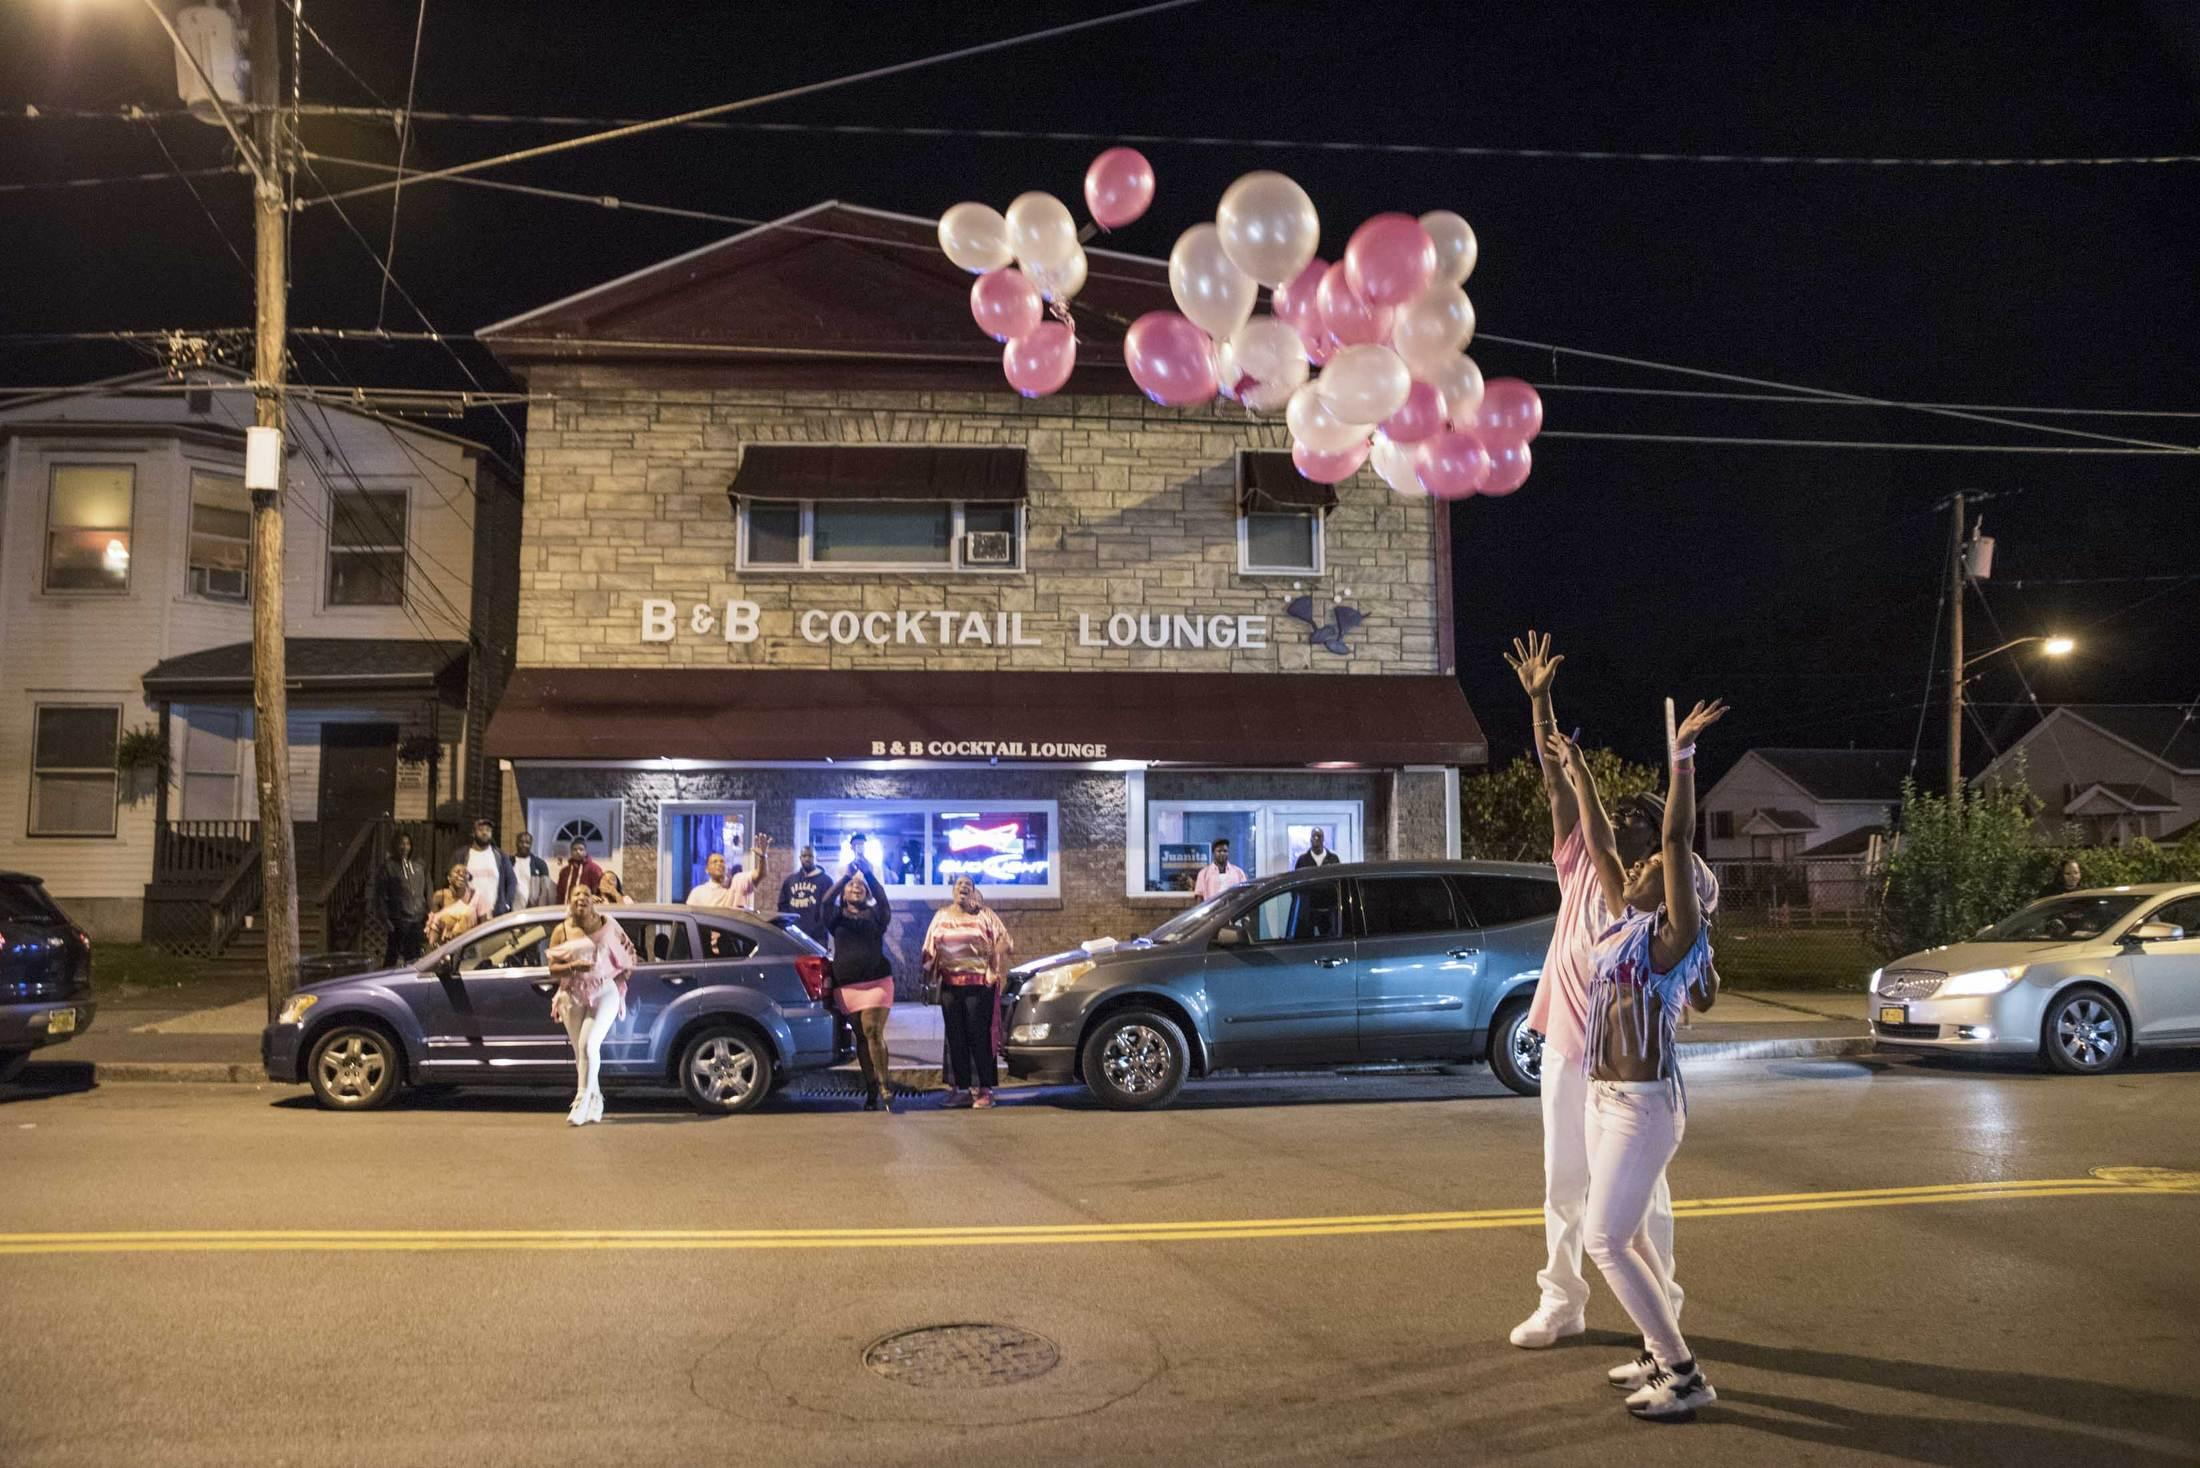 India Jenkins, a cancer survivor, releases balloons for a breast cancer awareness event at the B&B Cocktail Lounge on the South Side.